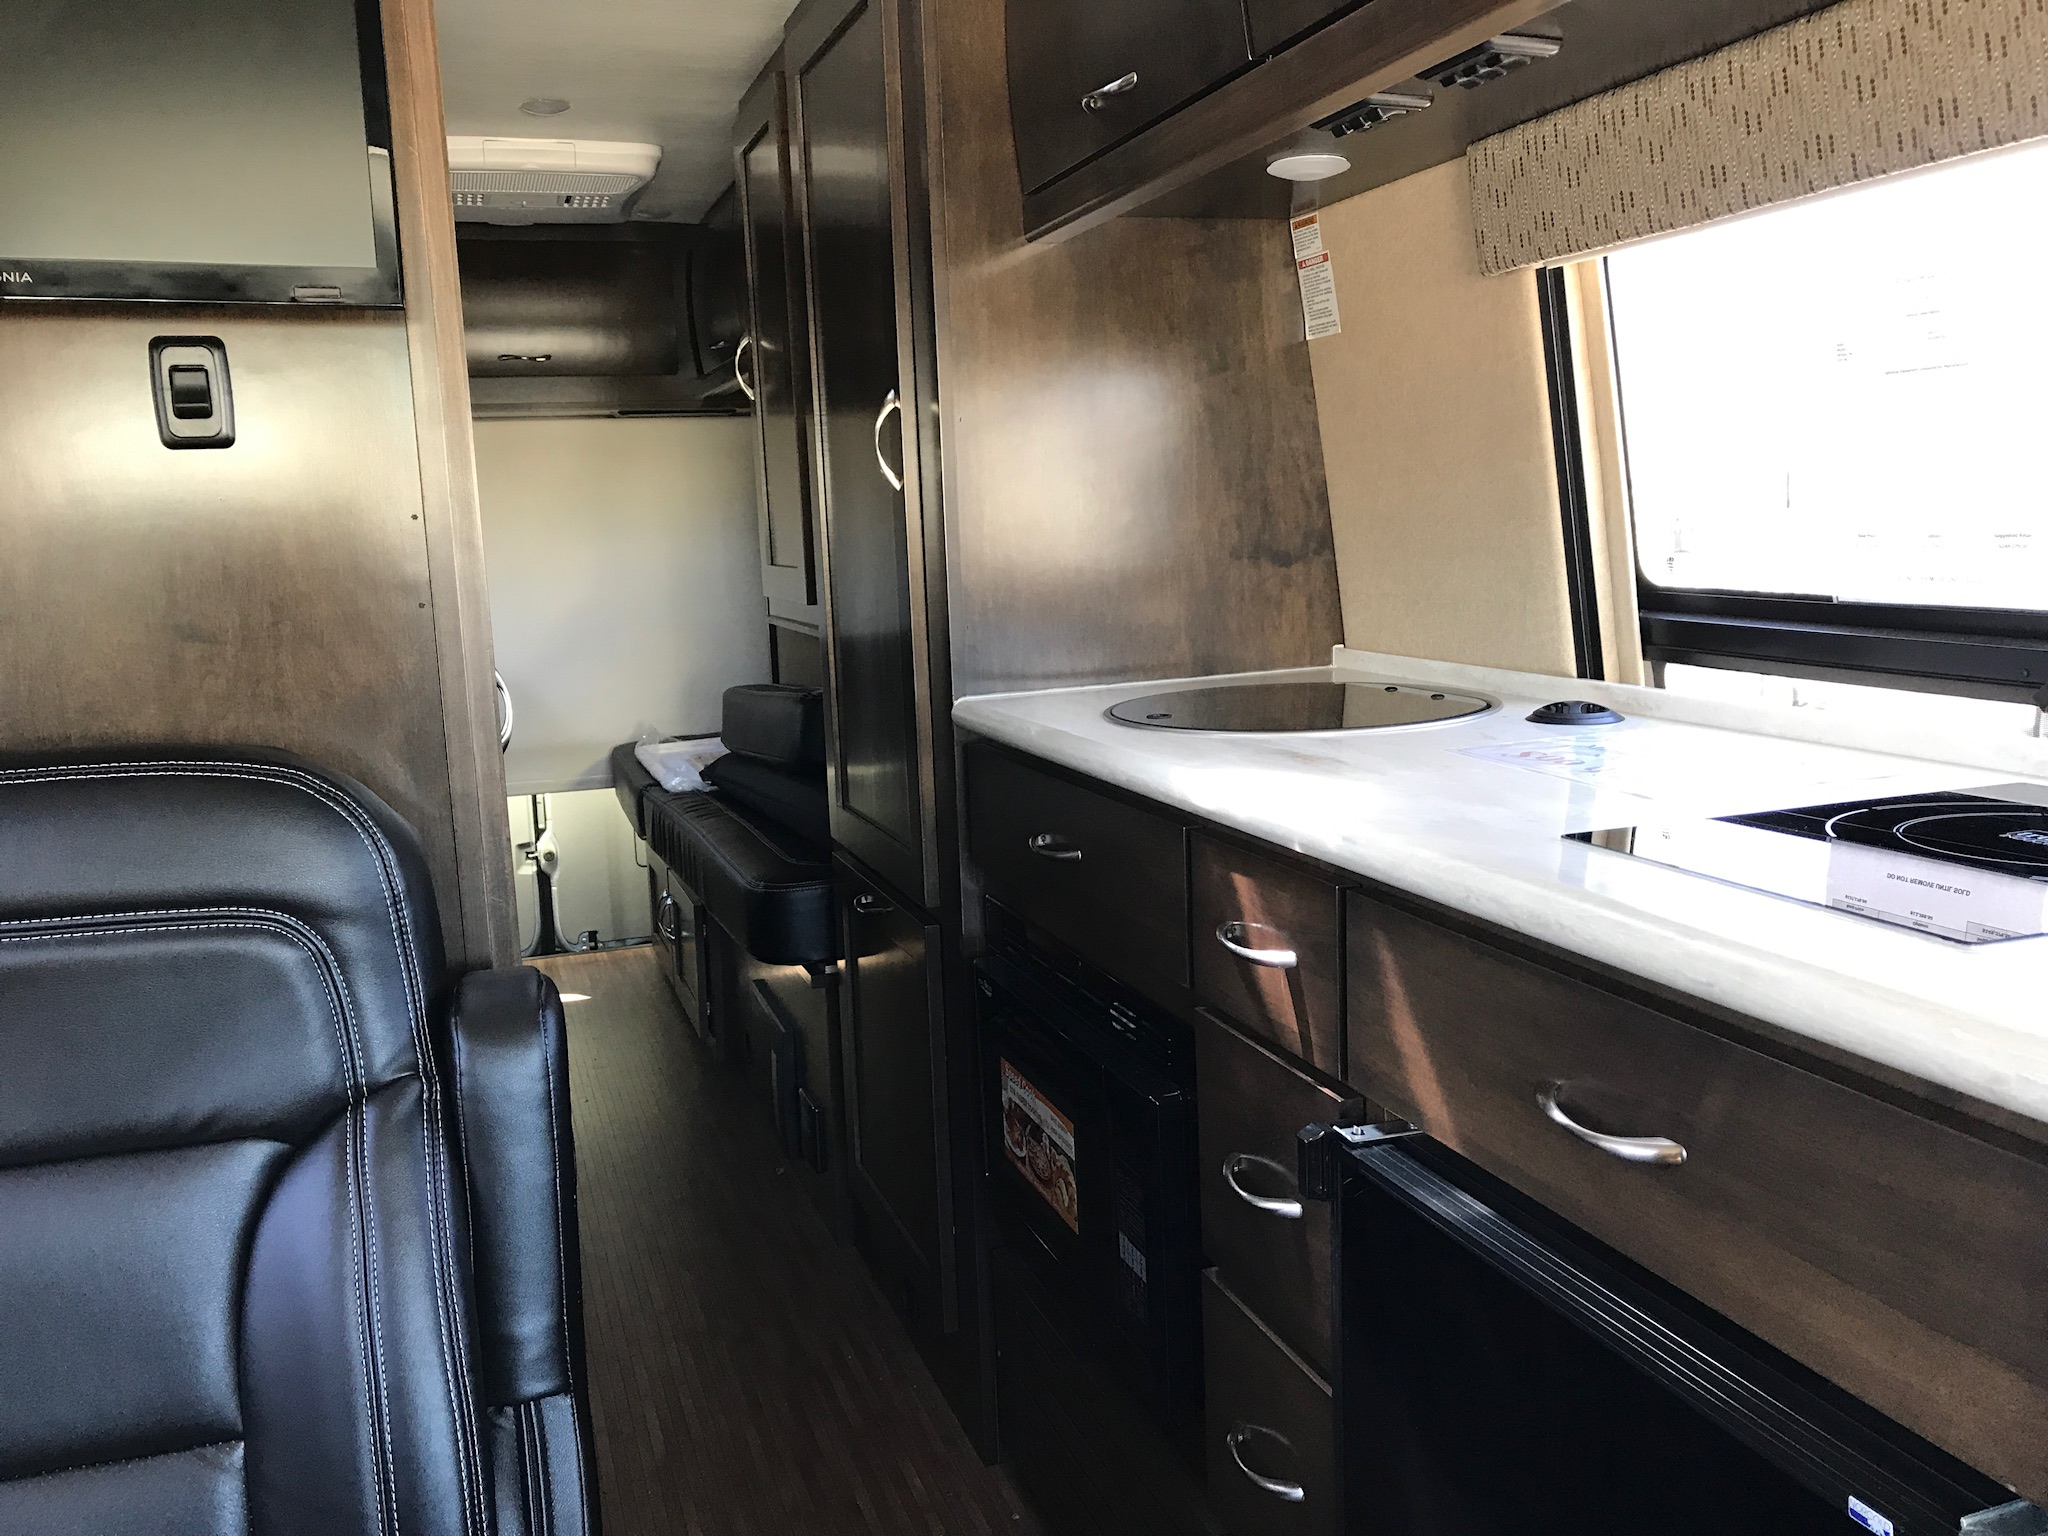 The inside of a Winnebago class B that I looked at yesterday.  Photo taken by and the property of FourWalls.